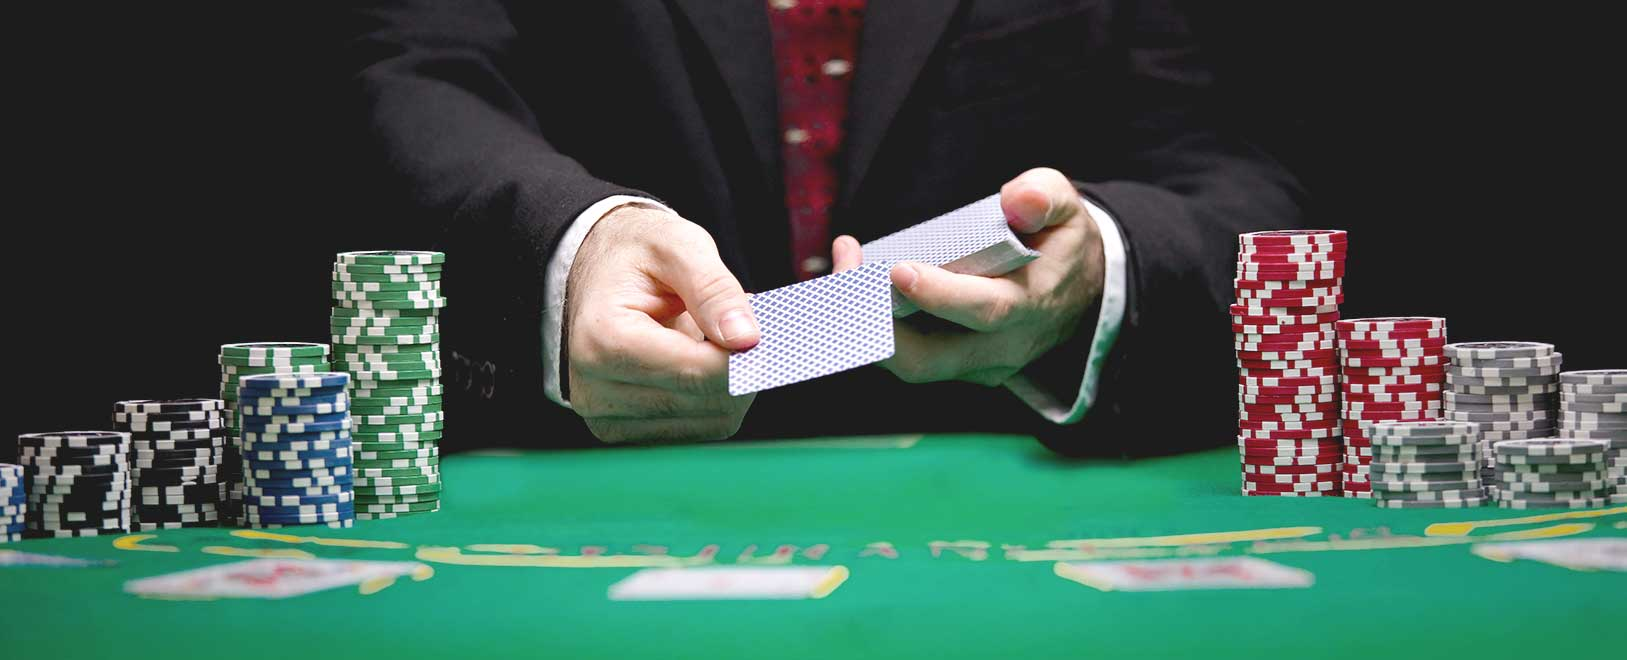 Bodog betting rules of blackjack 3 betting light out of position josh